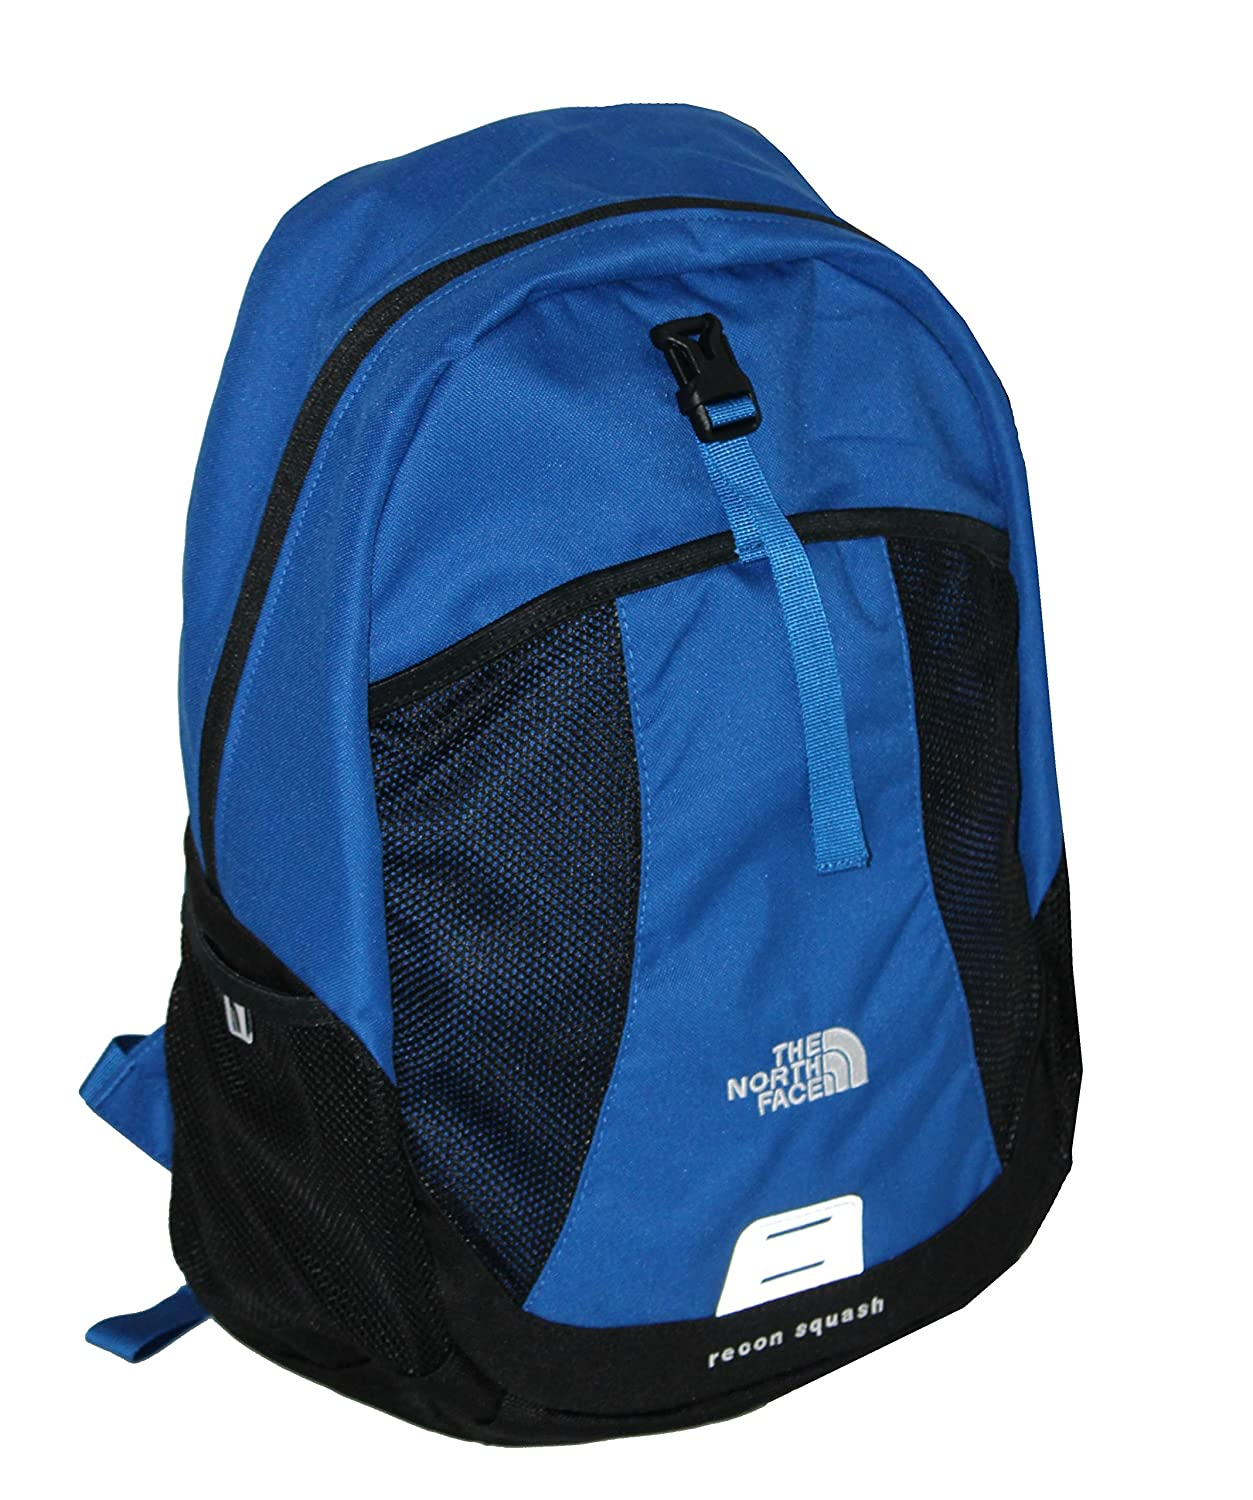 The North Face Recon Squash Kids BACKPACK